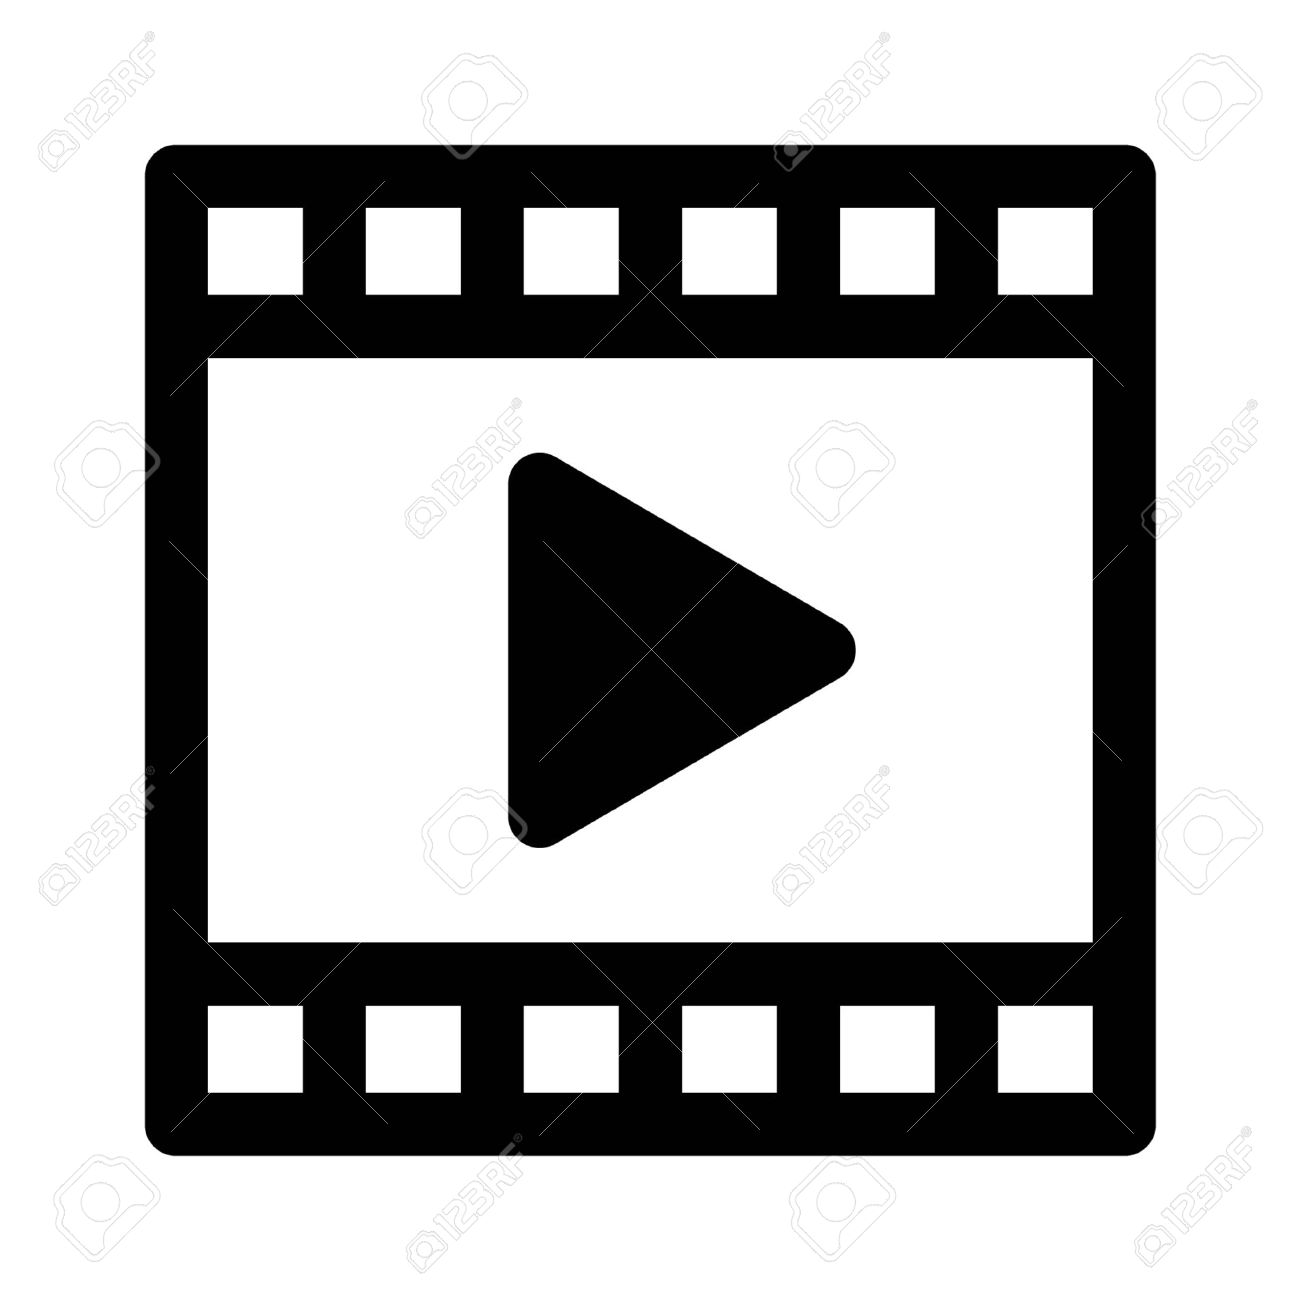 Video Clip Play Line Art Icon For Apps And Websites Royalty Free Cliparts,  Vectors, And Stock Illustration. Image 42615284.